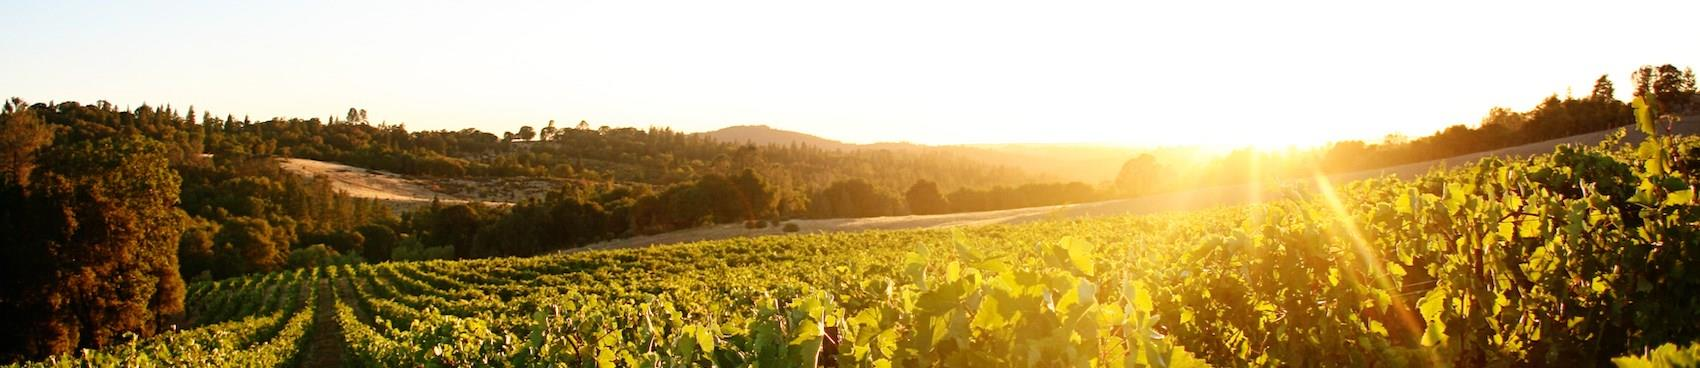 Purchase Tickets to Summer Sunday Music @ Skinner at Skinner Vineyards & Winery on CellarPass